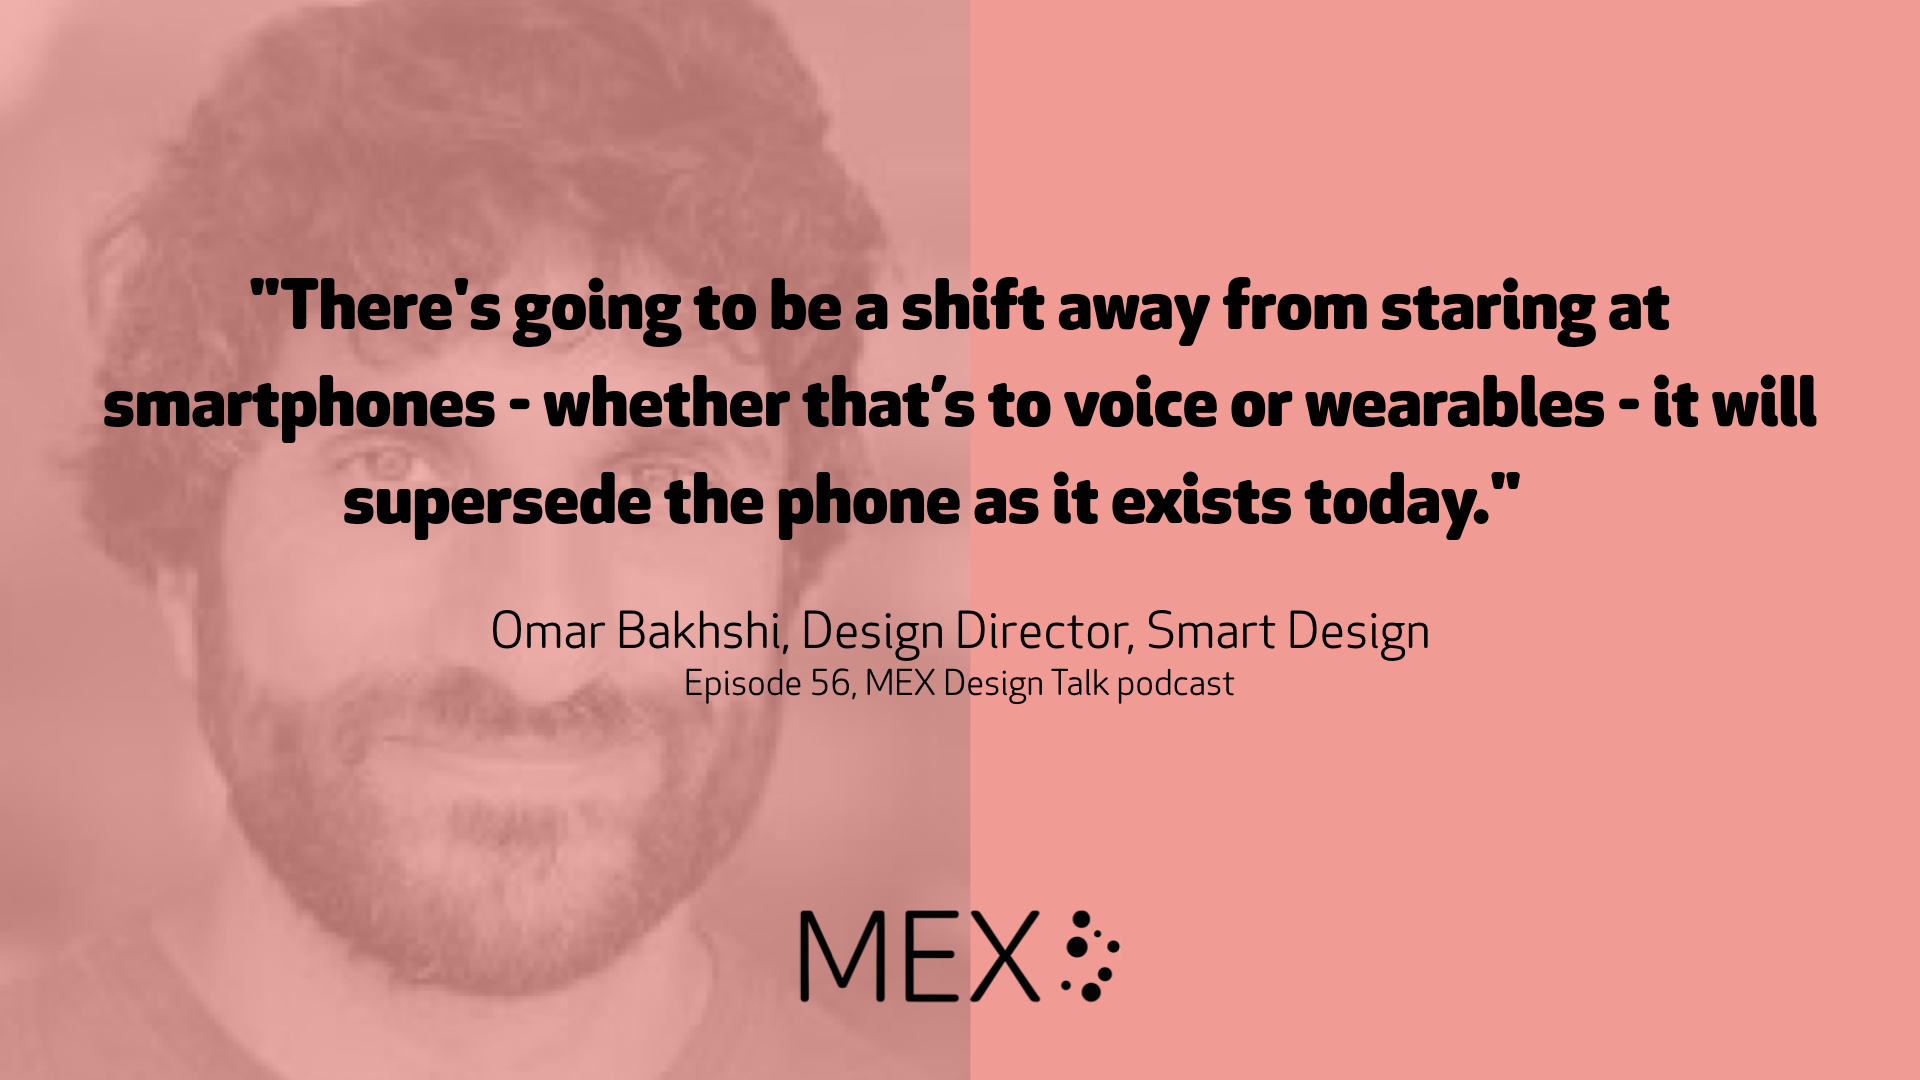 """There's going to be a shift away from staring at smartphones - whether that's to voice or wearables - it will supersede the phone as it exists today."" Omar Bakhshi, Design Director, Smart Design Episode 56, MEX Design Talk podcast"